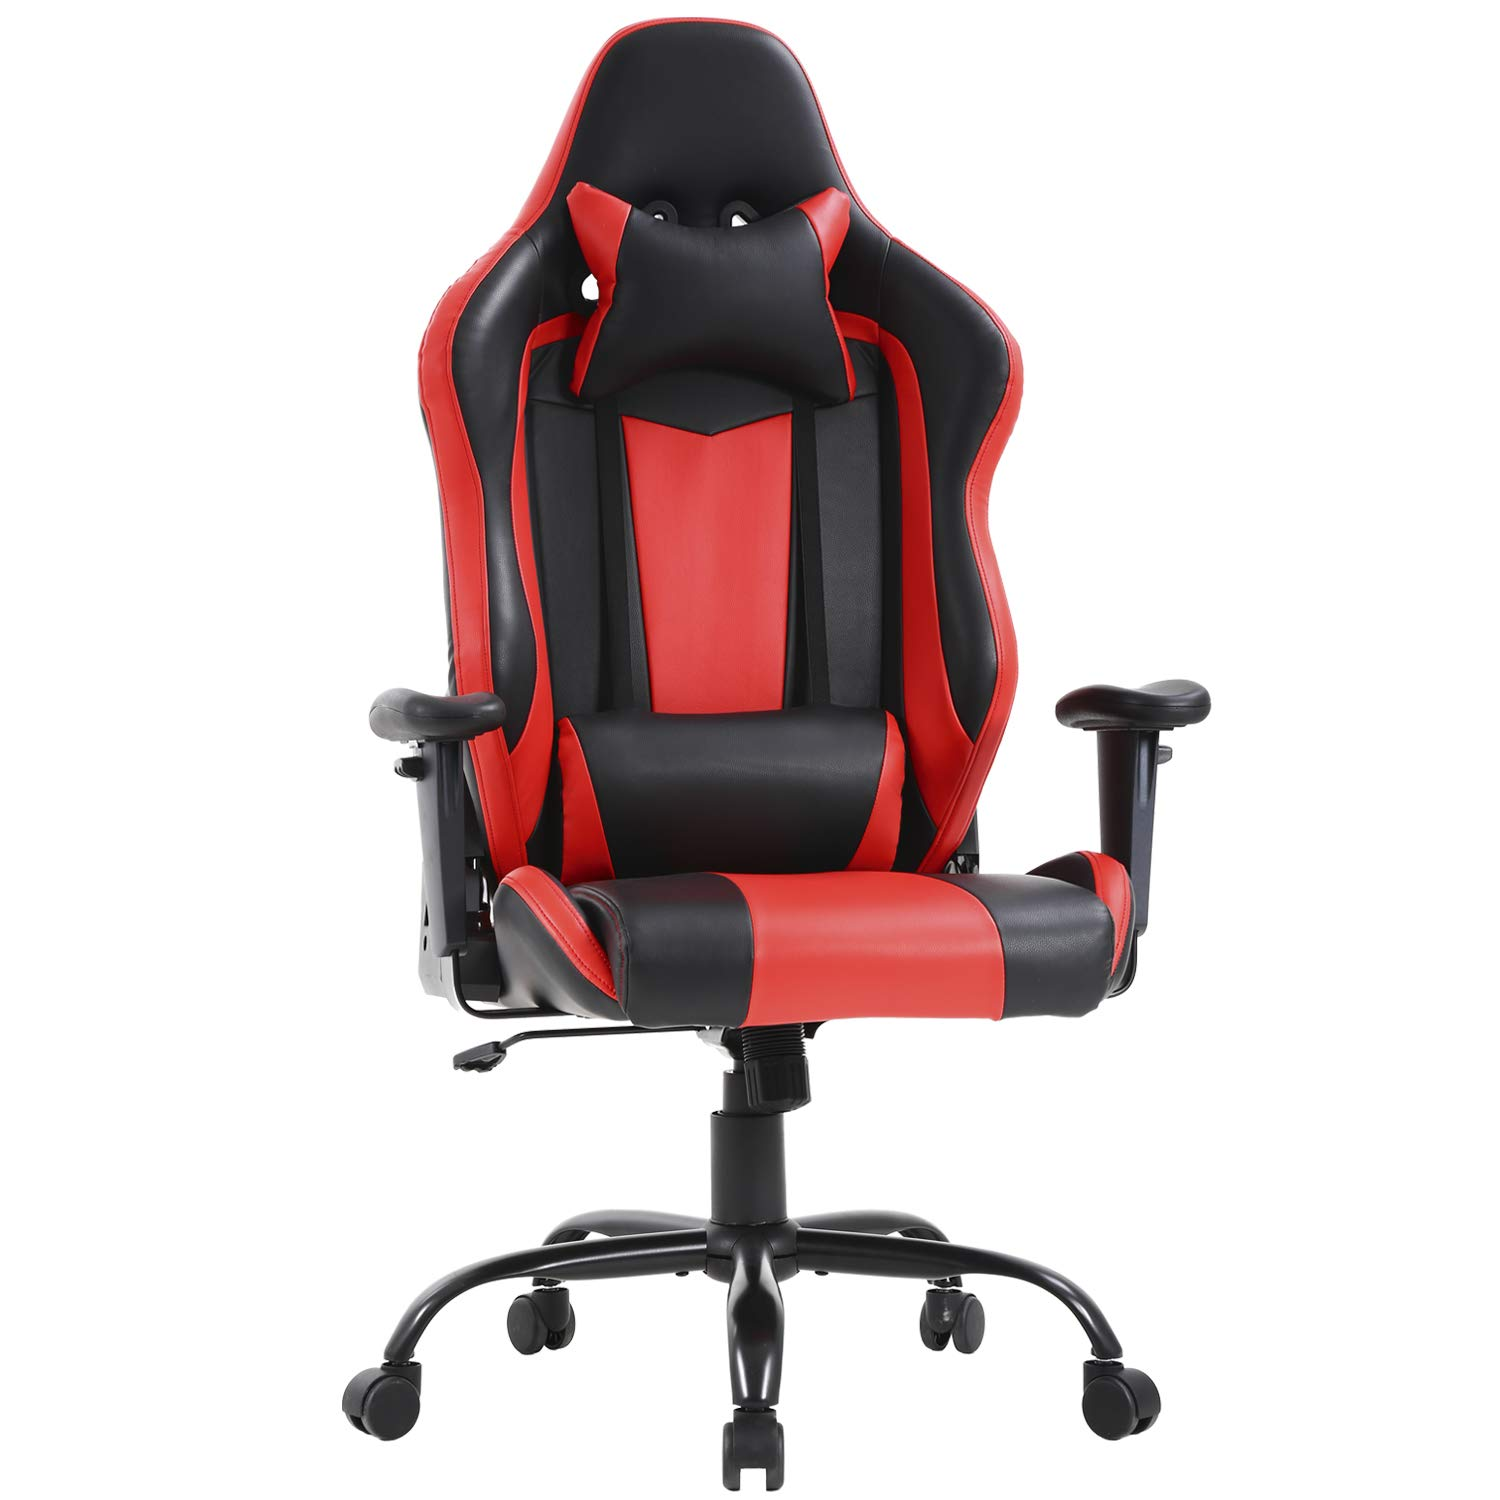 High-Back Big and Tall Office Chair 400lbs Ergonomic Gaming Chair Desk Chair Task PU Rolling Swivel Adjustable Computer Chair with Lumbar Support Executive Chair for Women, Men (Red)